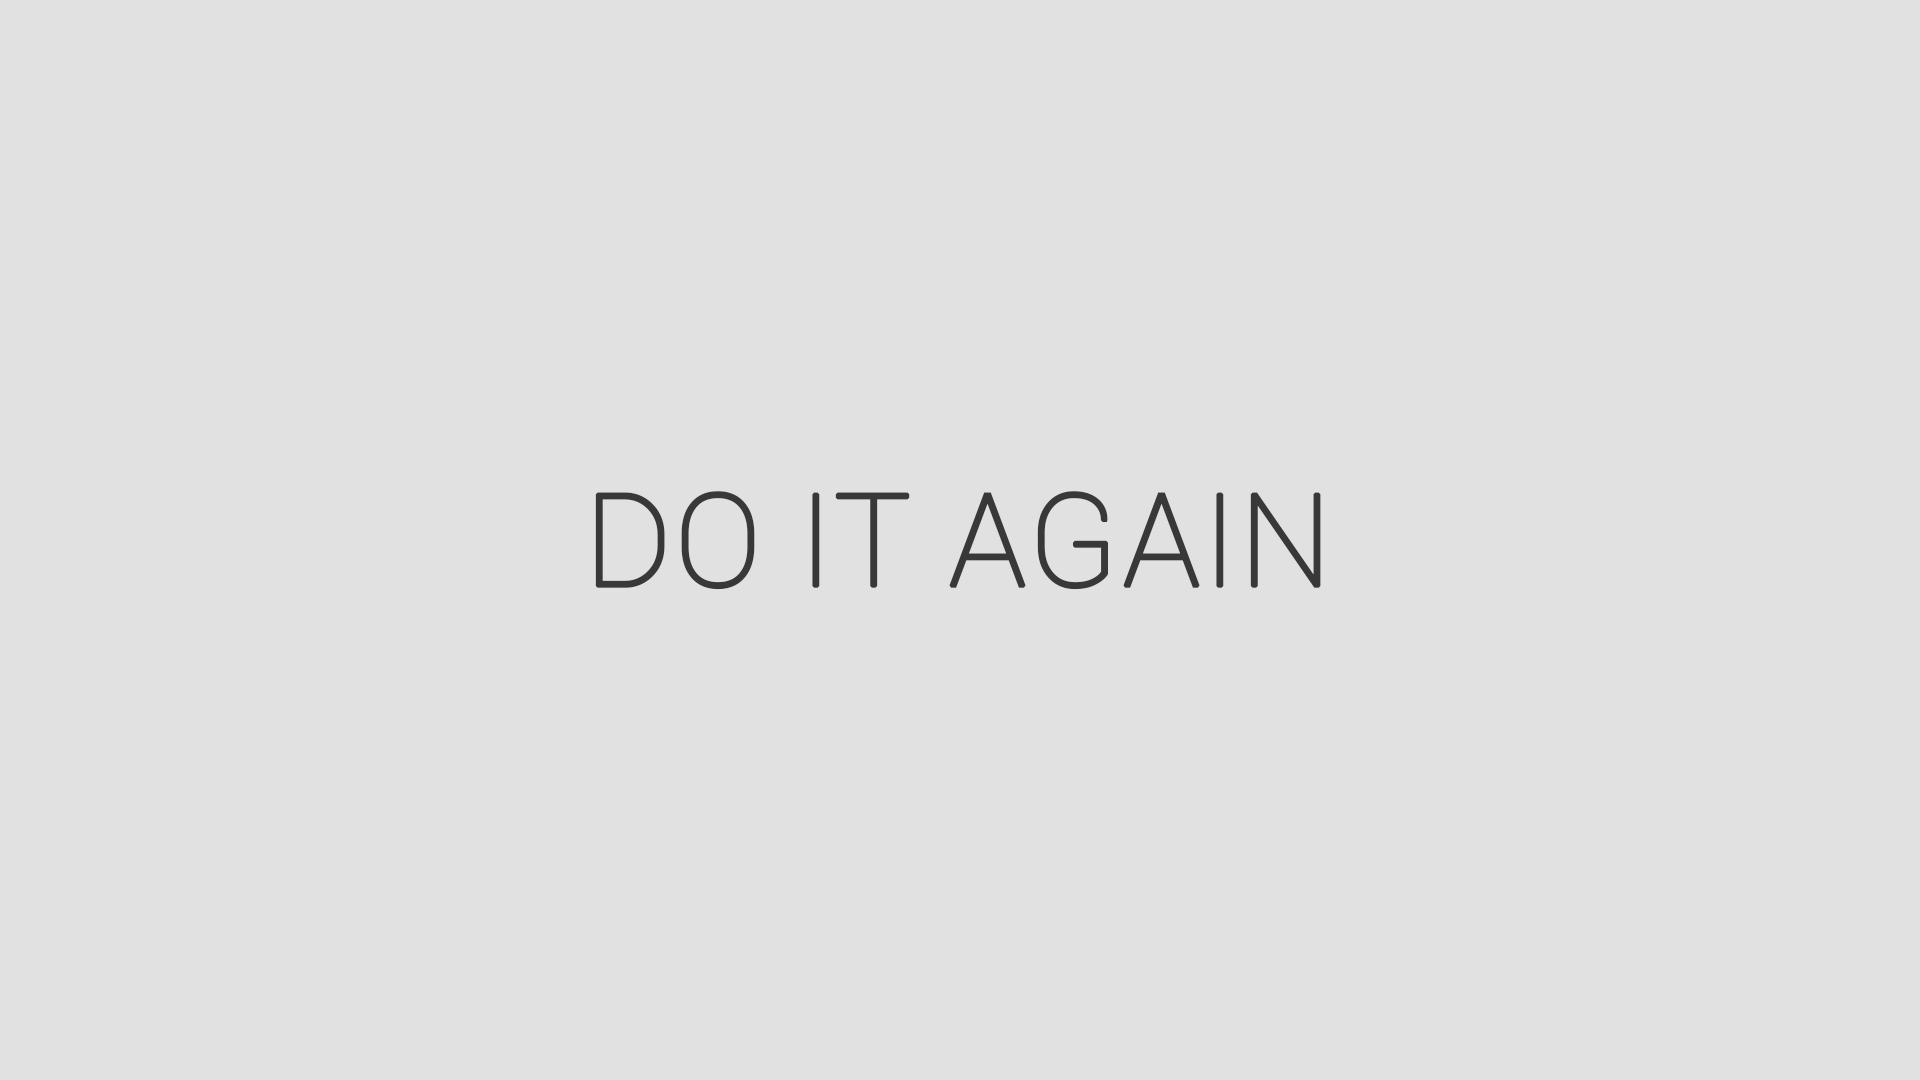 [Image] DO IT AGAIN